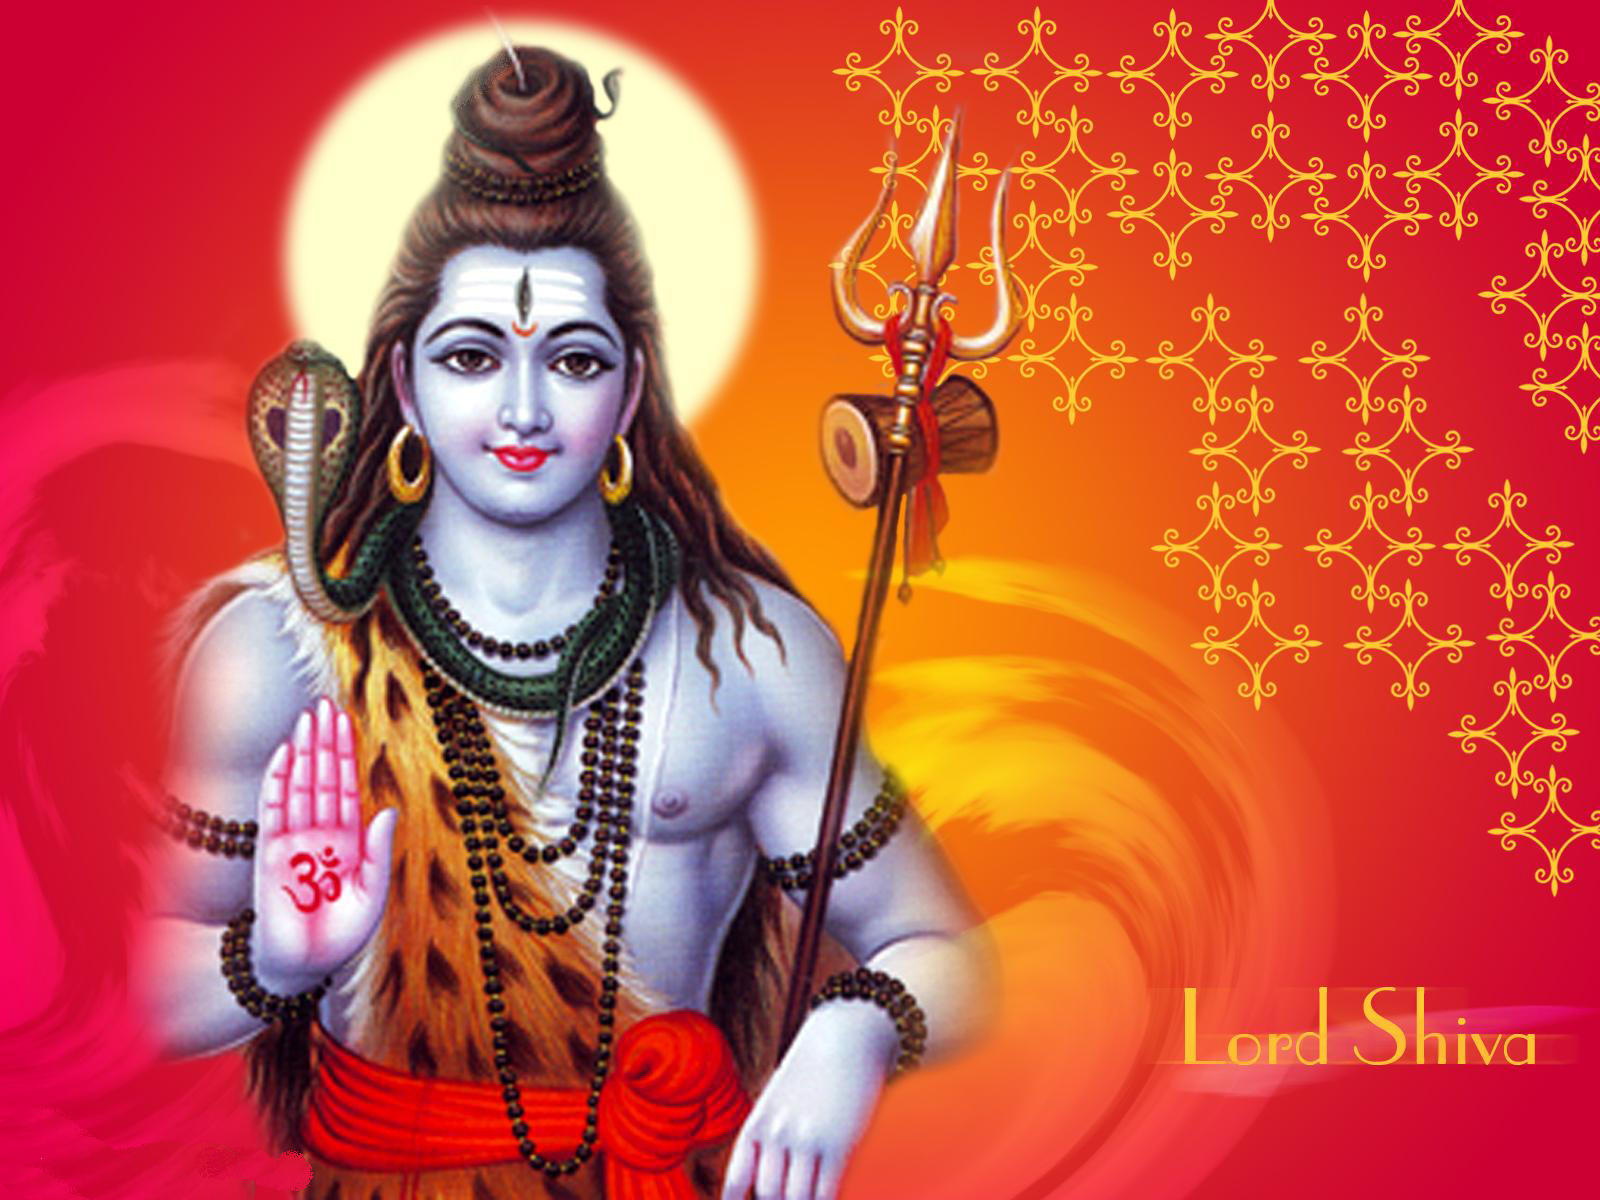 letest hd lord shiva wallpaper lord shiva desktop backgrounds lord shiva best pictures